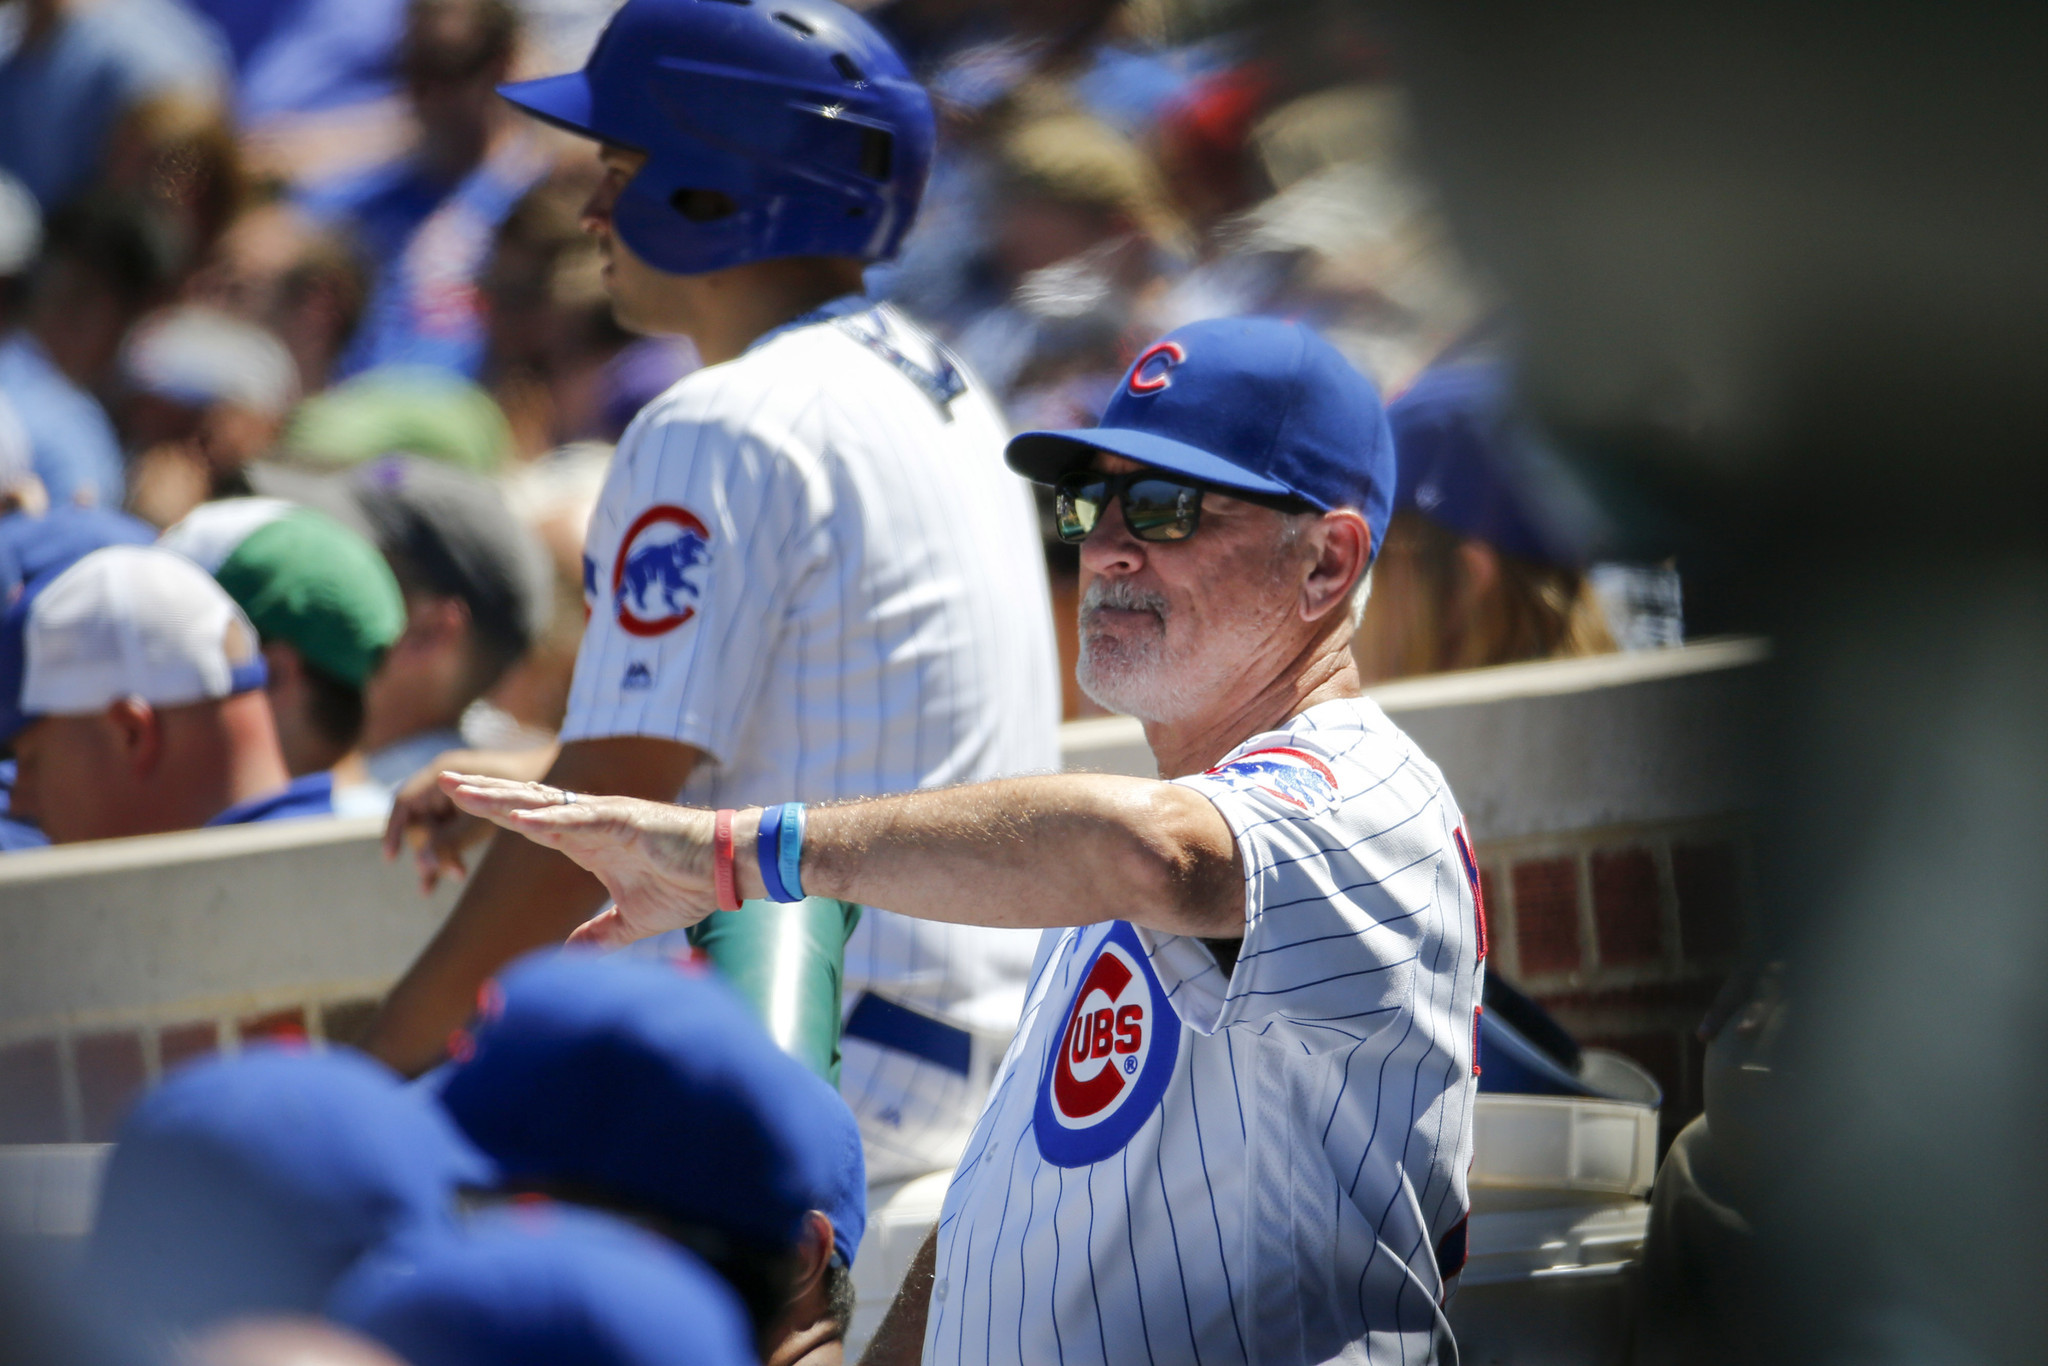 Ct-relievers-in-outfield-cubs-bits-spt-0702-20160701